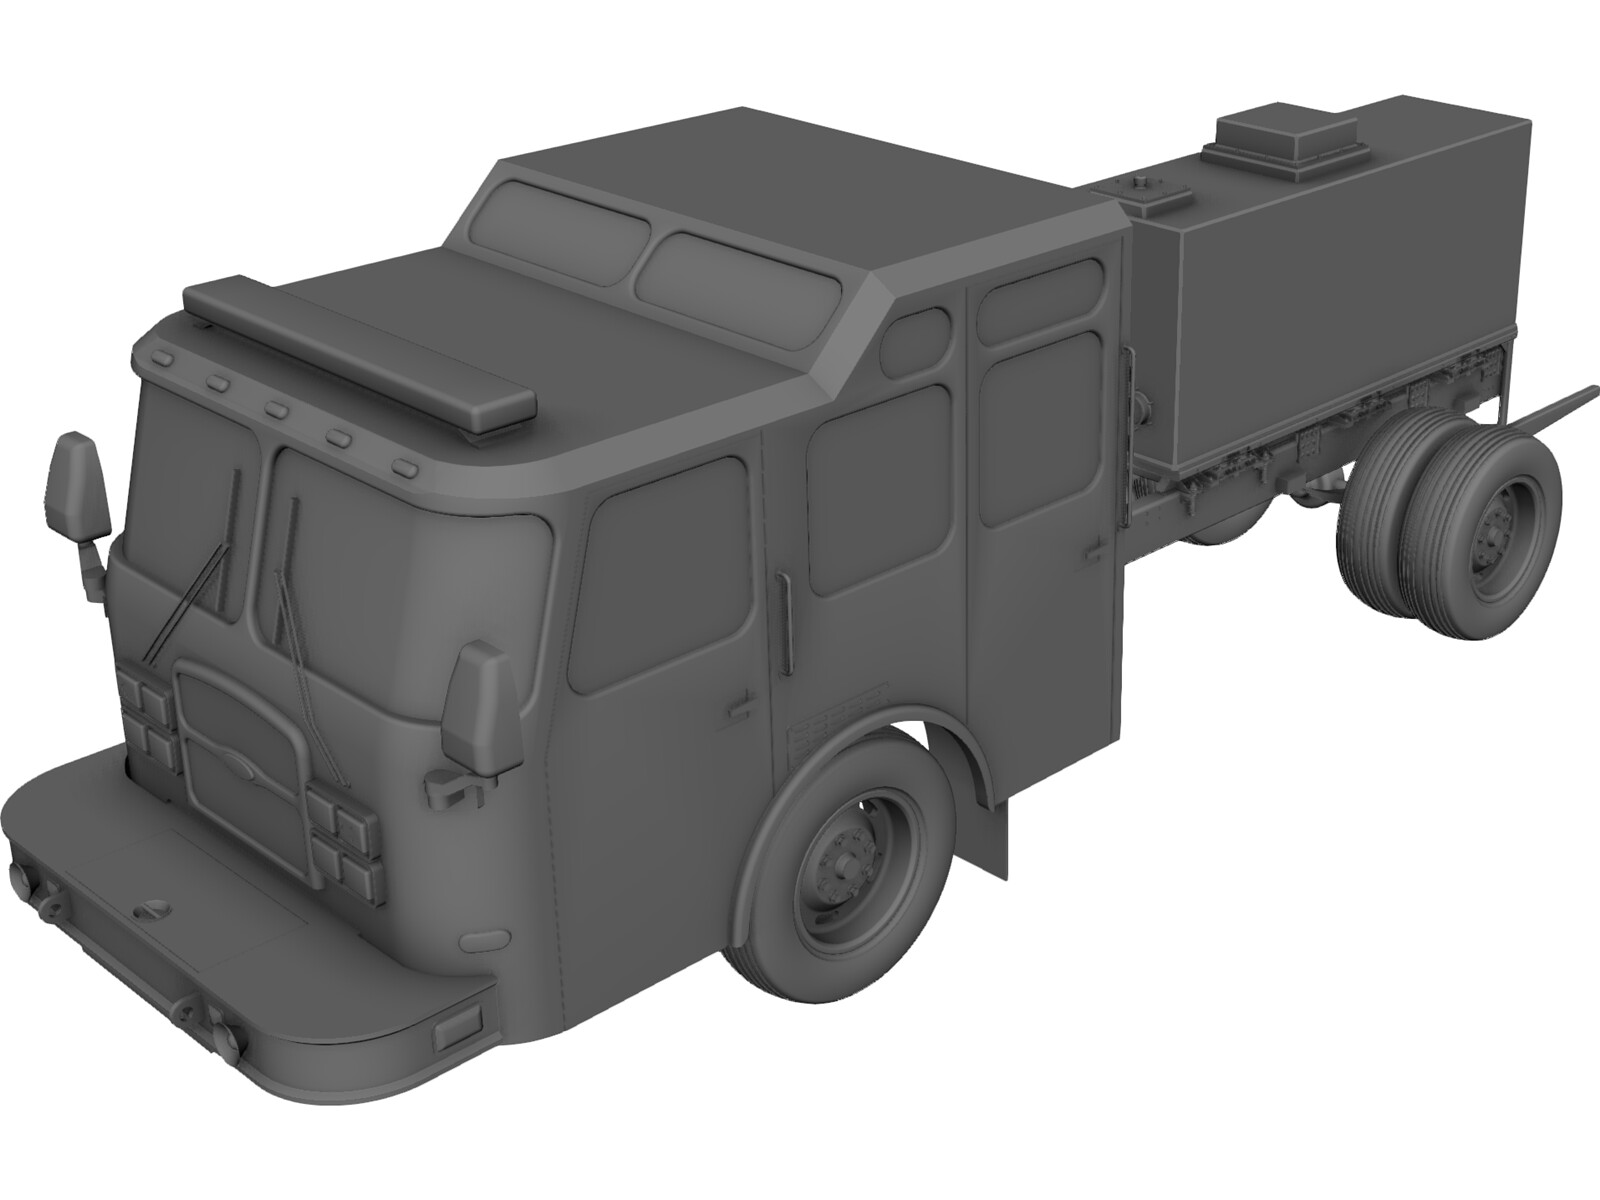 US Fire Truck Chassis 3D CAD Model